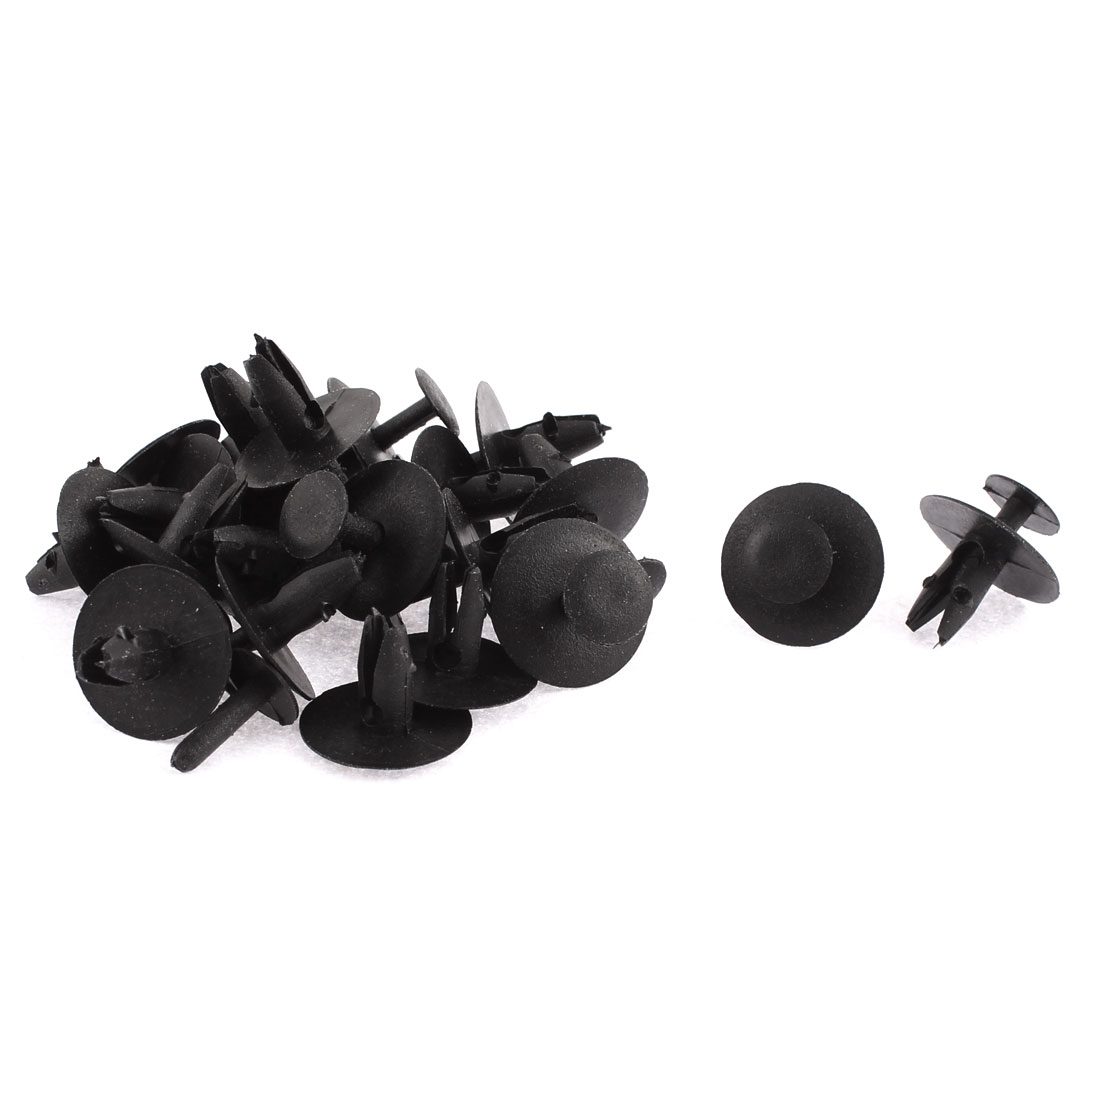 7mm x 6mm Hole Plastic Car Bumper Fender Push Clips Rivet Retainer 20pcs